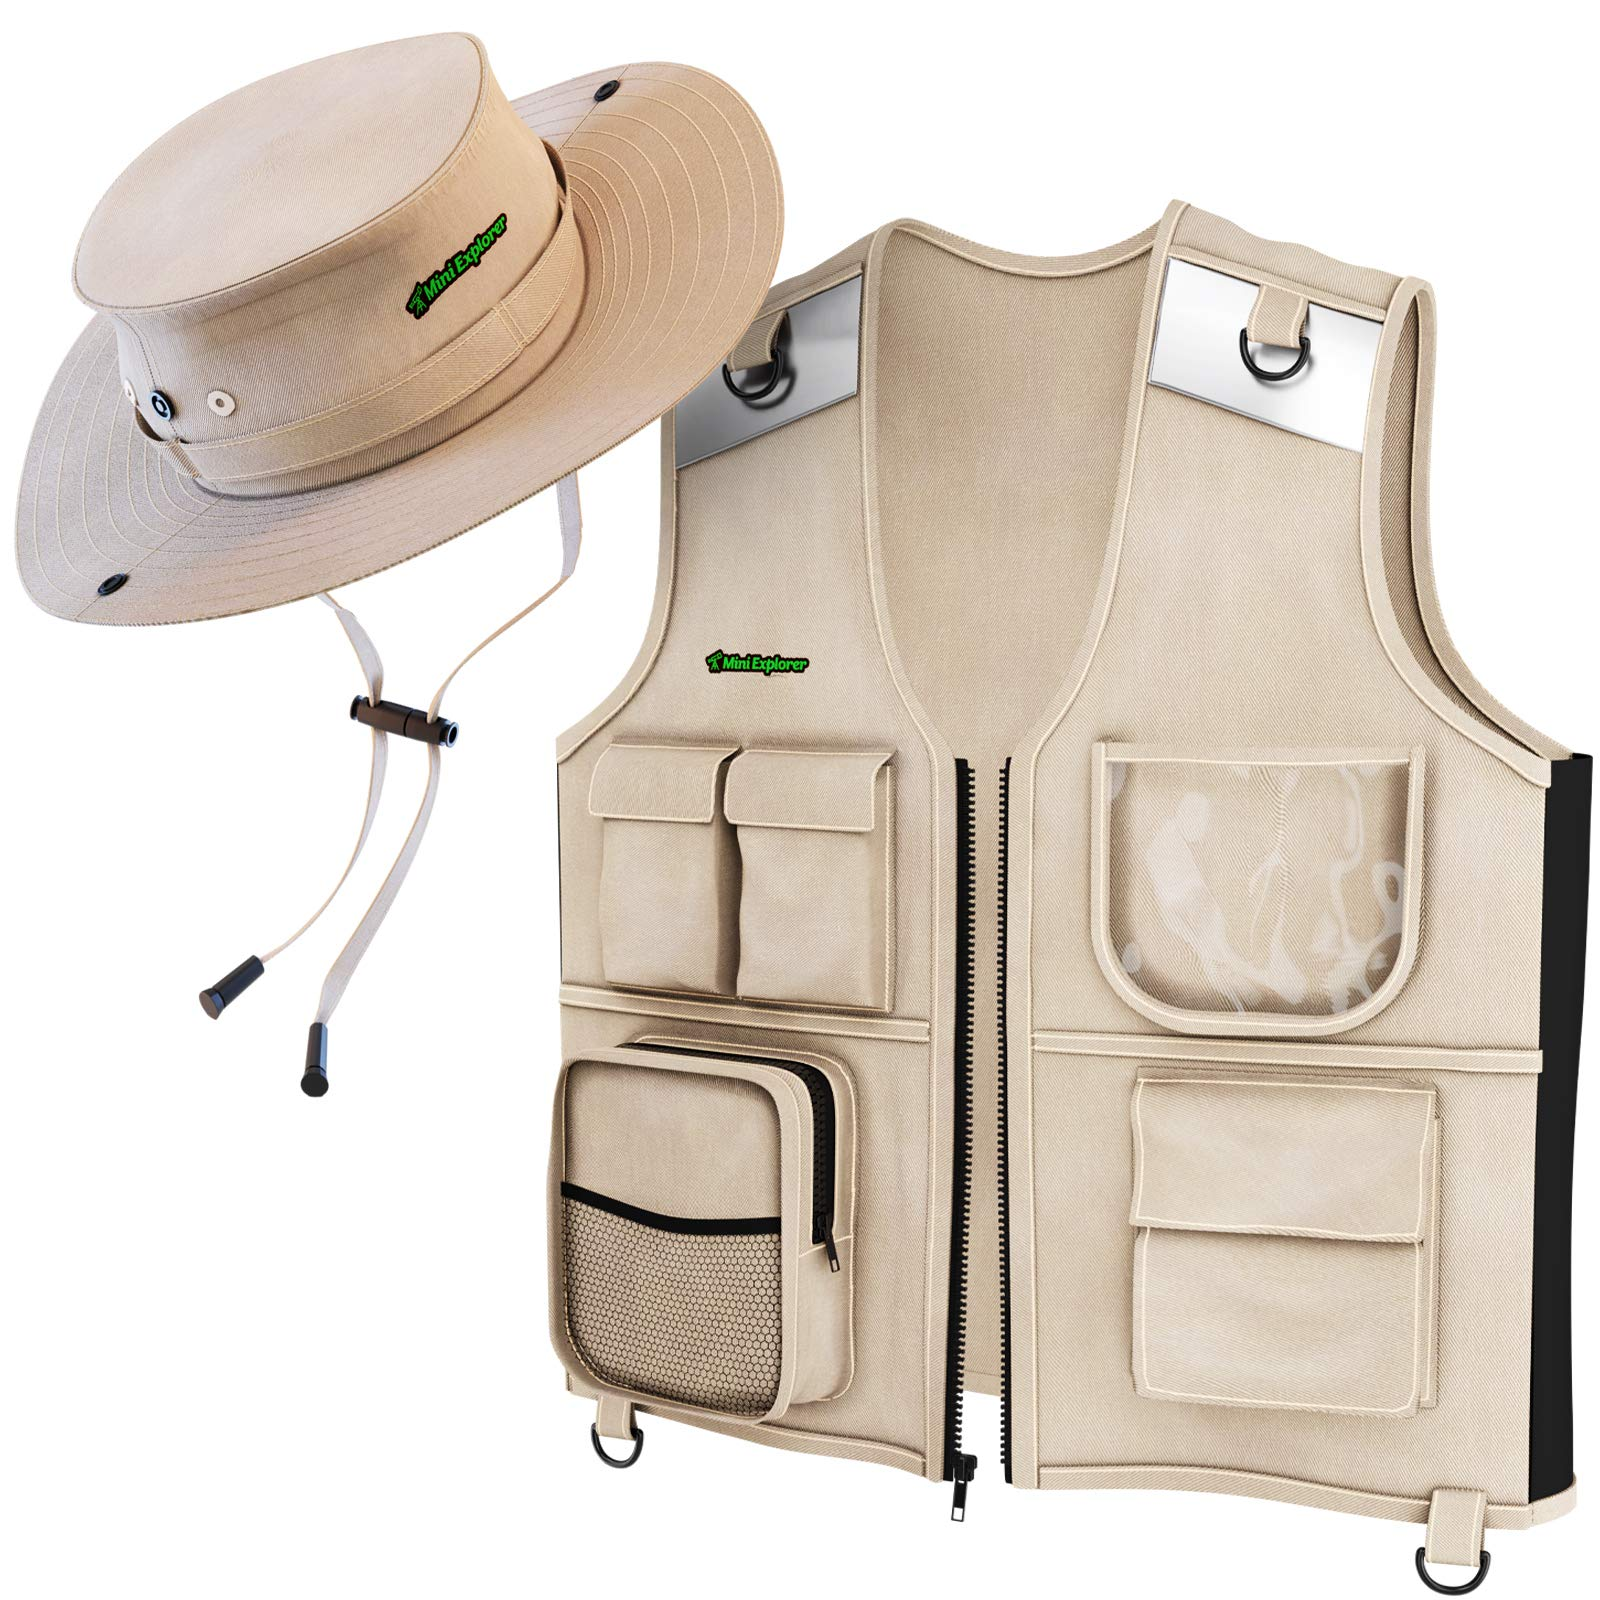 Outdoor Explorer Set - Cargo Vest & Hat for Young Kids Ages 4-6 - Durable Fabric, 5 Pockets, Safety Reflective Strips - Great Safari Gift for The Young Backyard Explorer - Park Ranger - Paleontologist